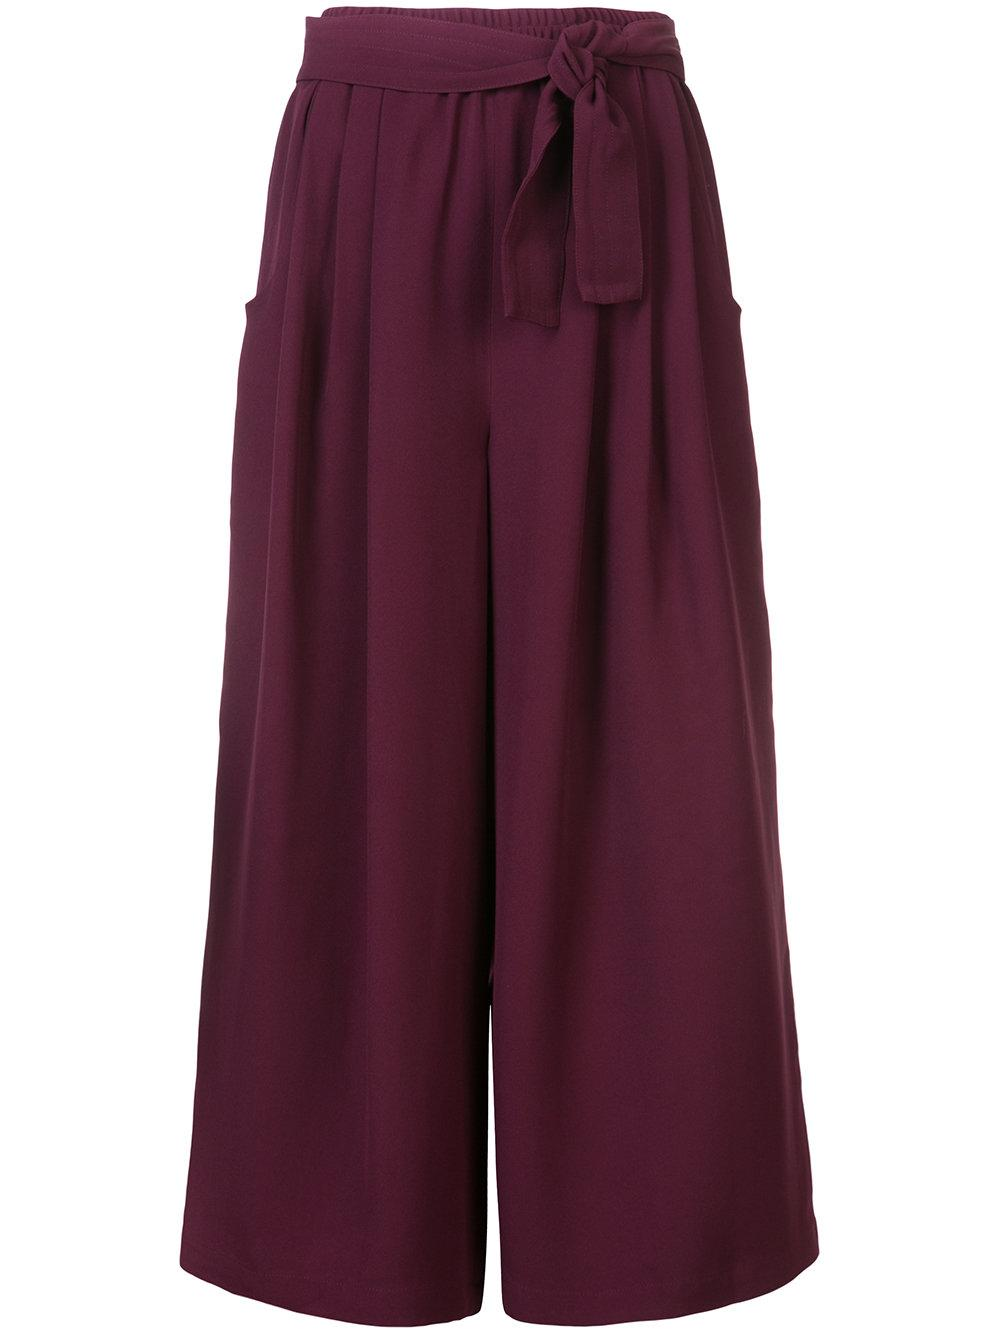 Whether you are looking for the best cropped palazzo pants or top-of-the-line cropped palazzo pants at affordable prices, you'll find a variety of cropped palazzo pants that fits your needs and budget. And don't forget, your cropped palazzo pants order may qualify for .